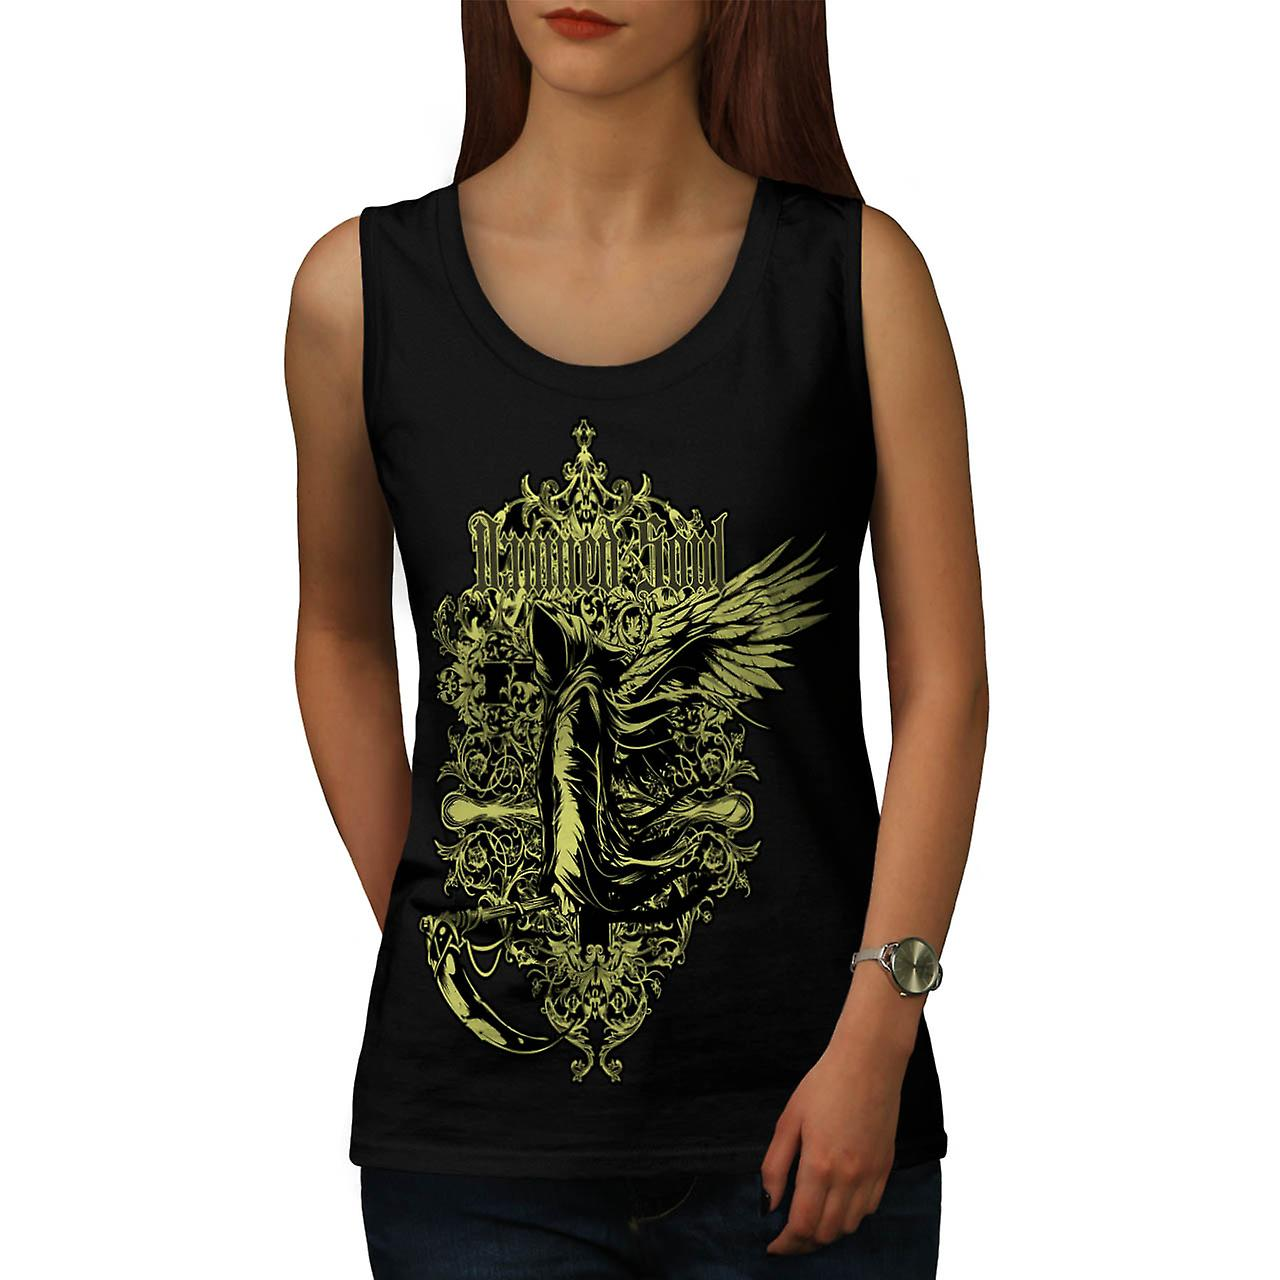 Anima dannata morte ascia Hell Angel donne Tank Top nero | Wellcoda